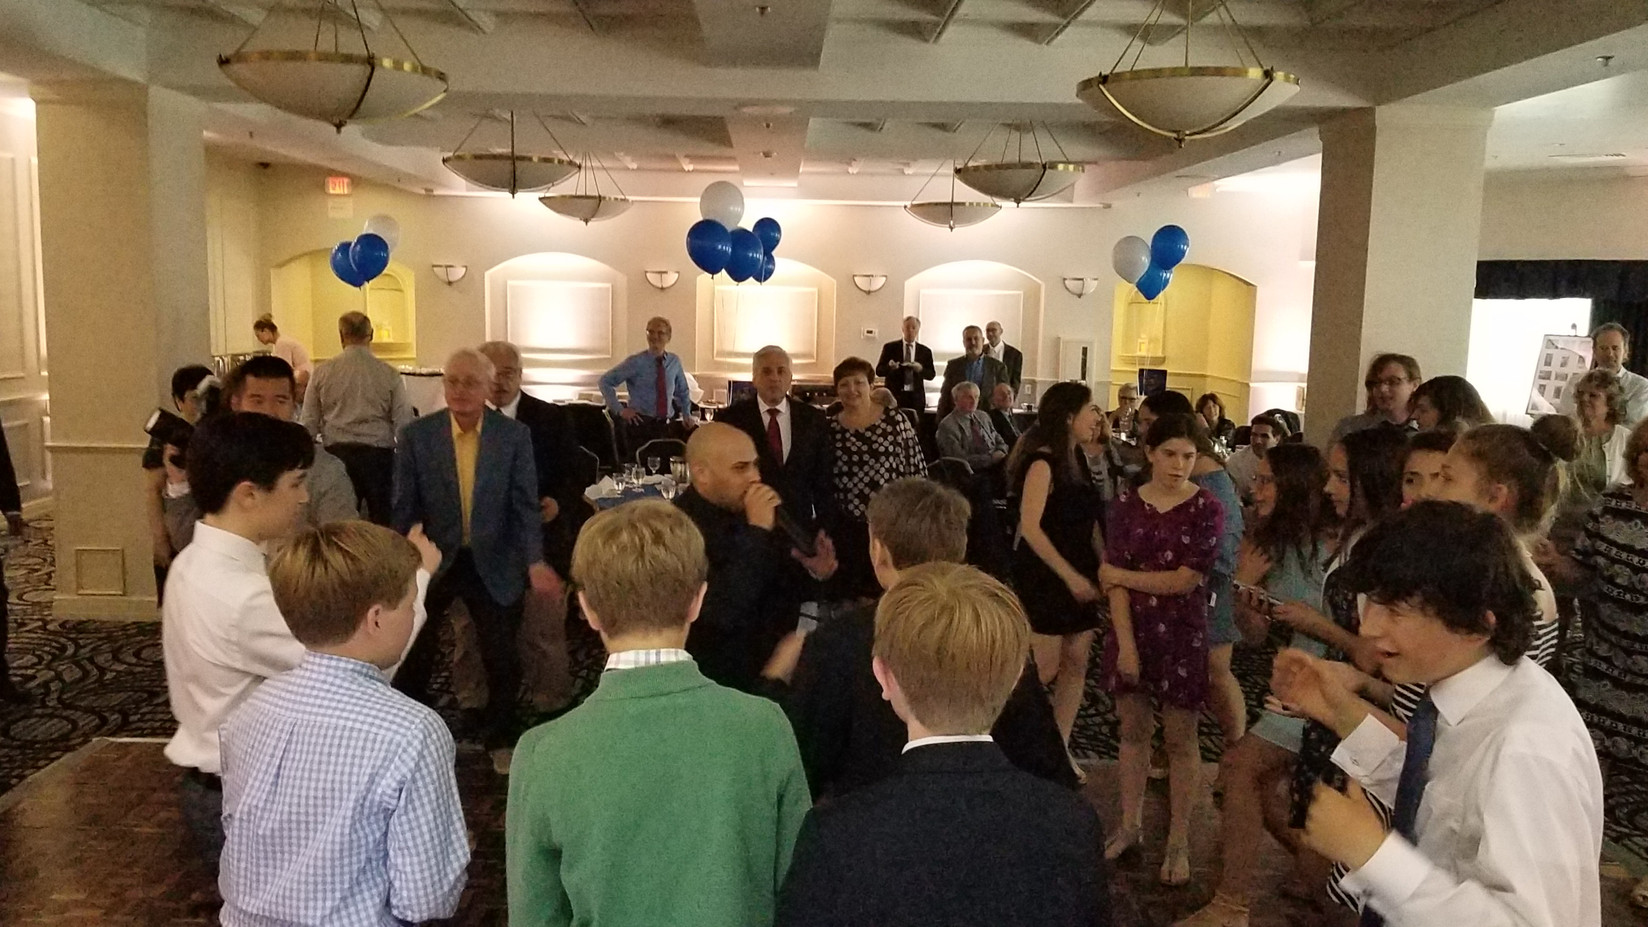 Event-Host-At-Teens-Party.jpg